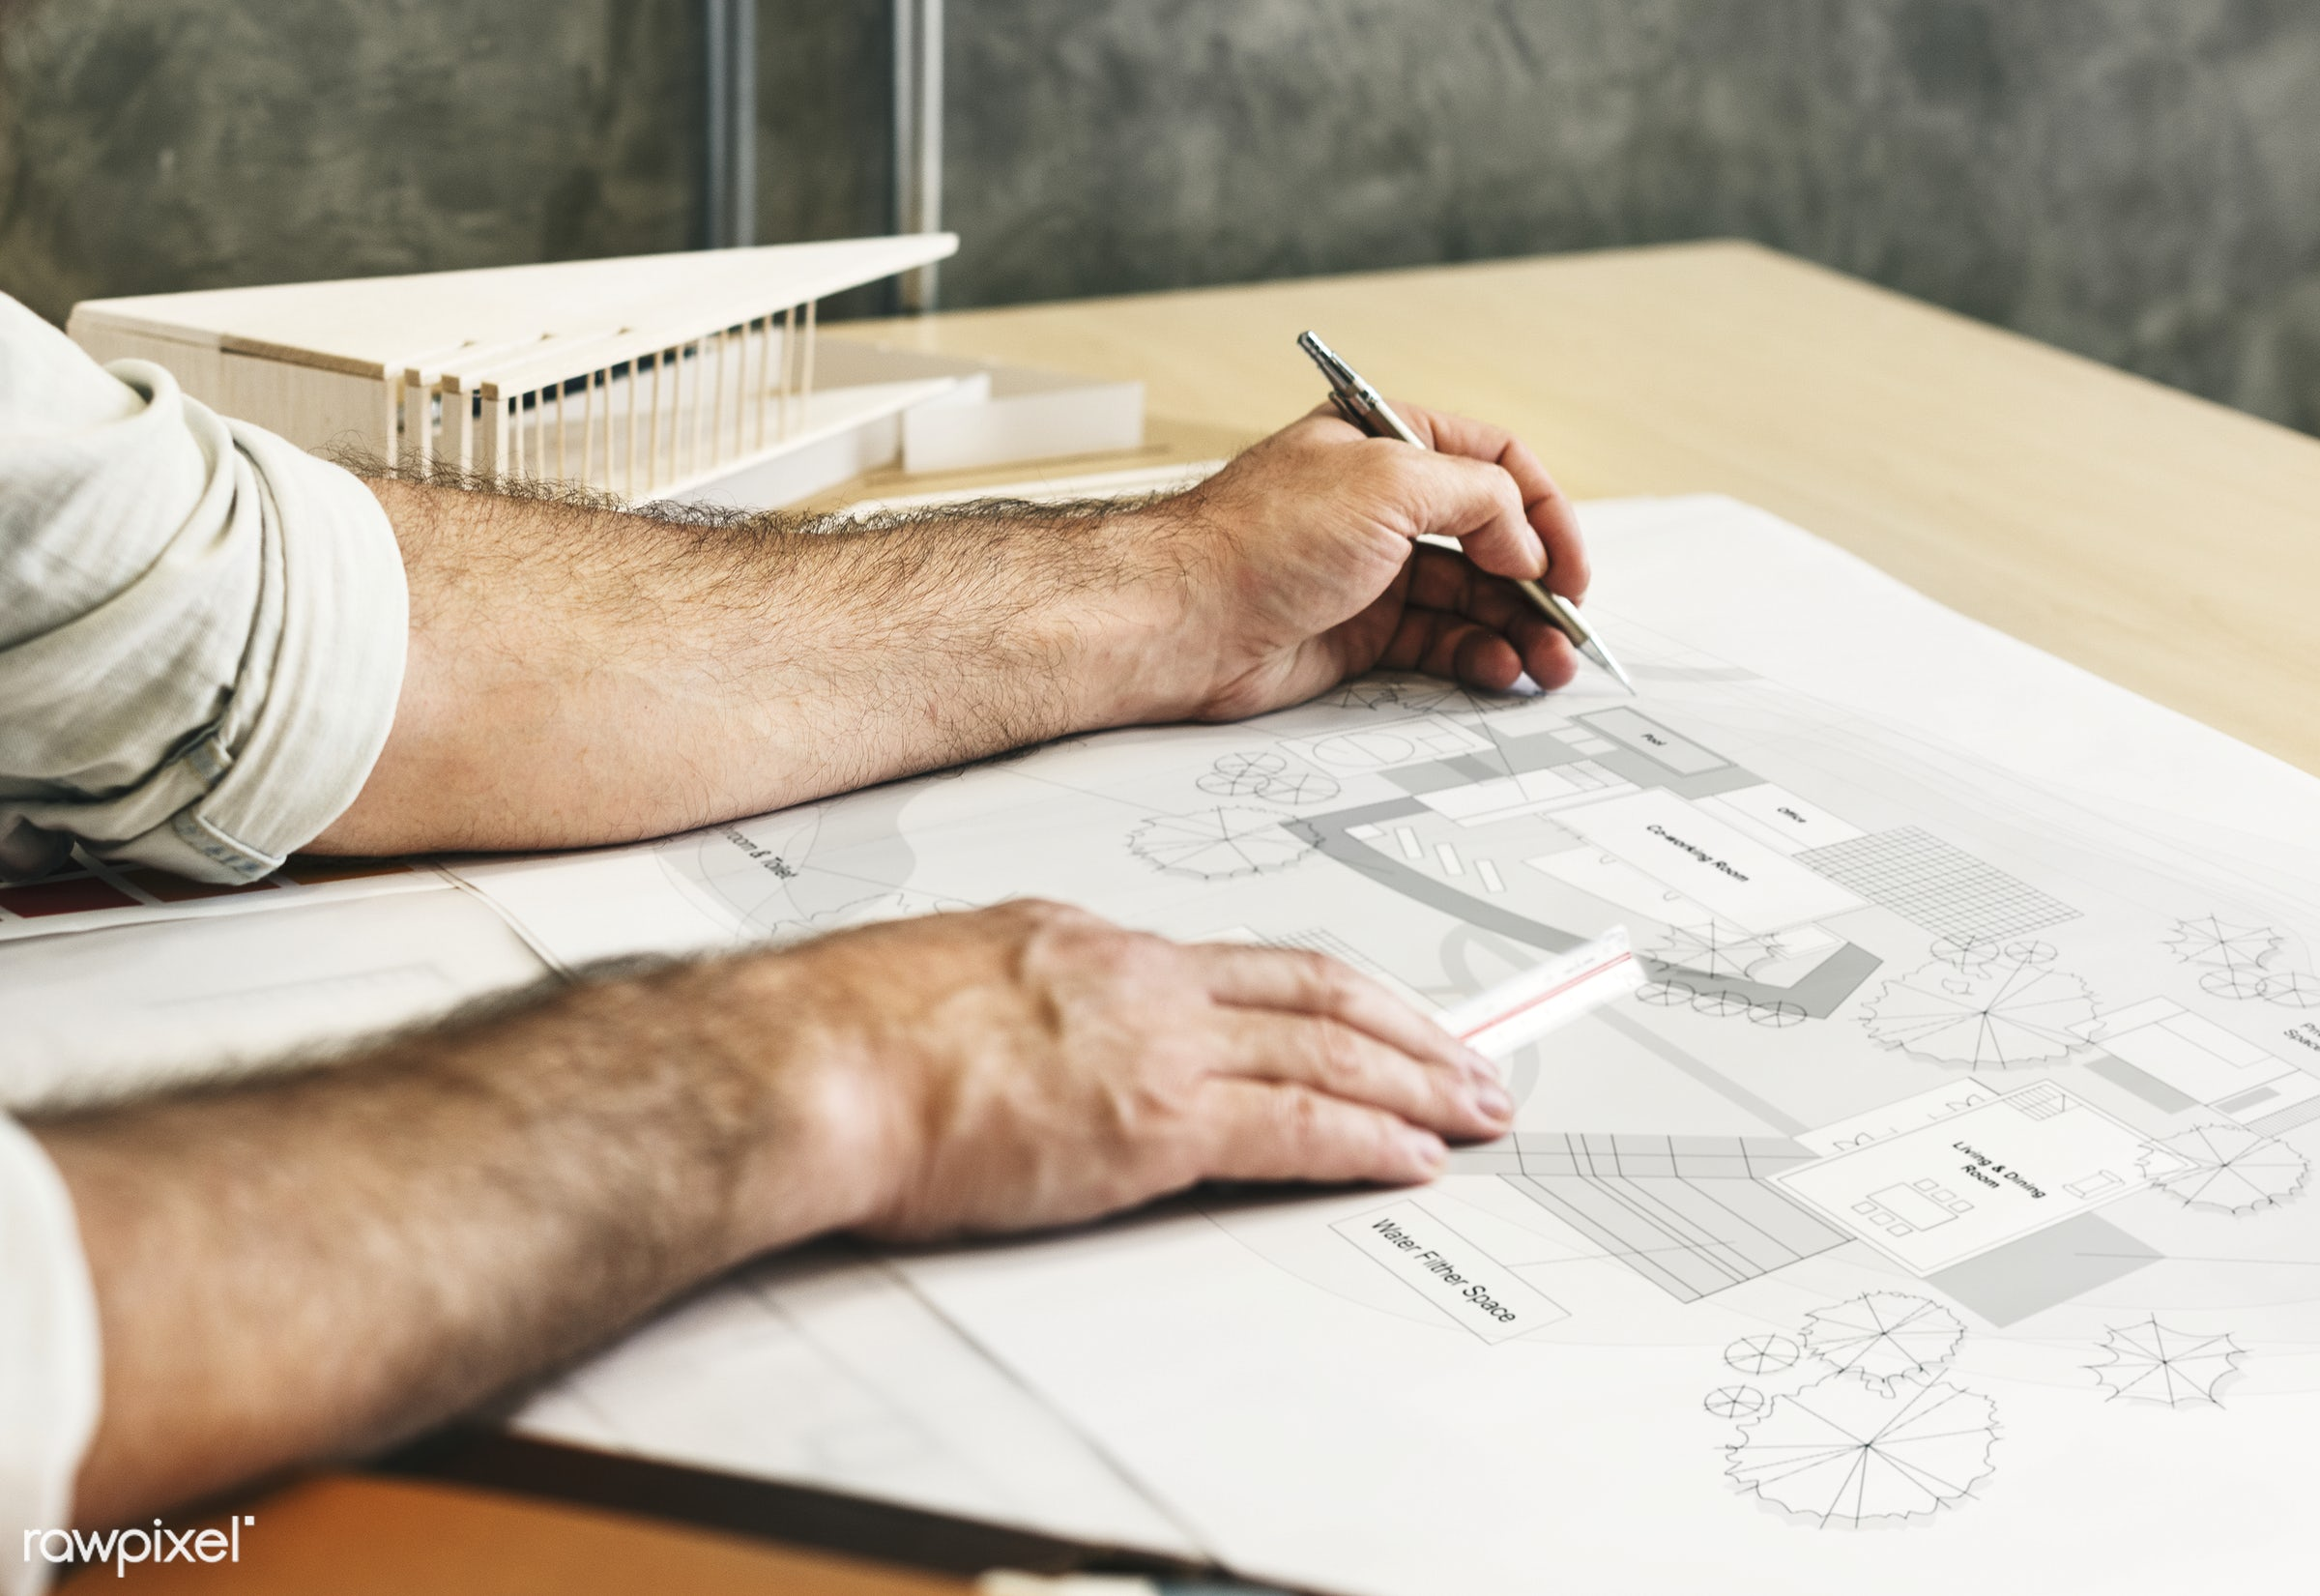 Architect working in a design studio - stationery, architect, architecture, blueprint, brainstorming, creative occupation,...